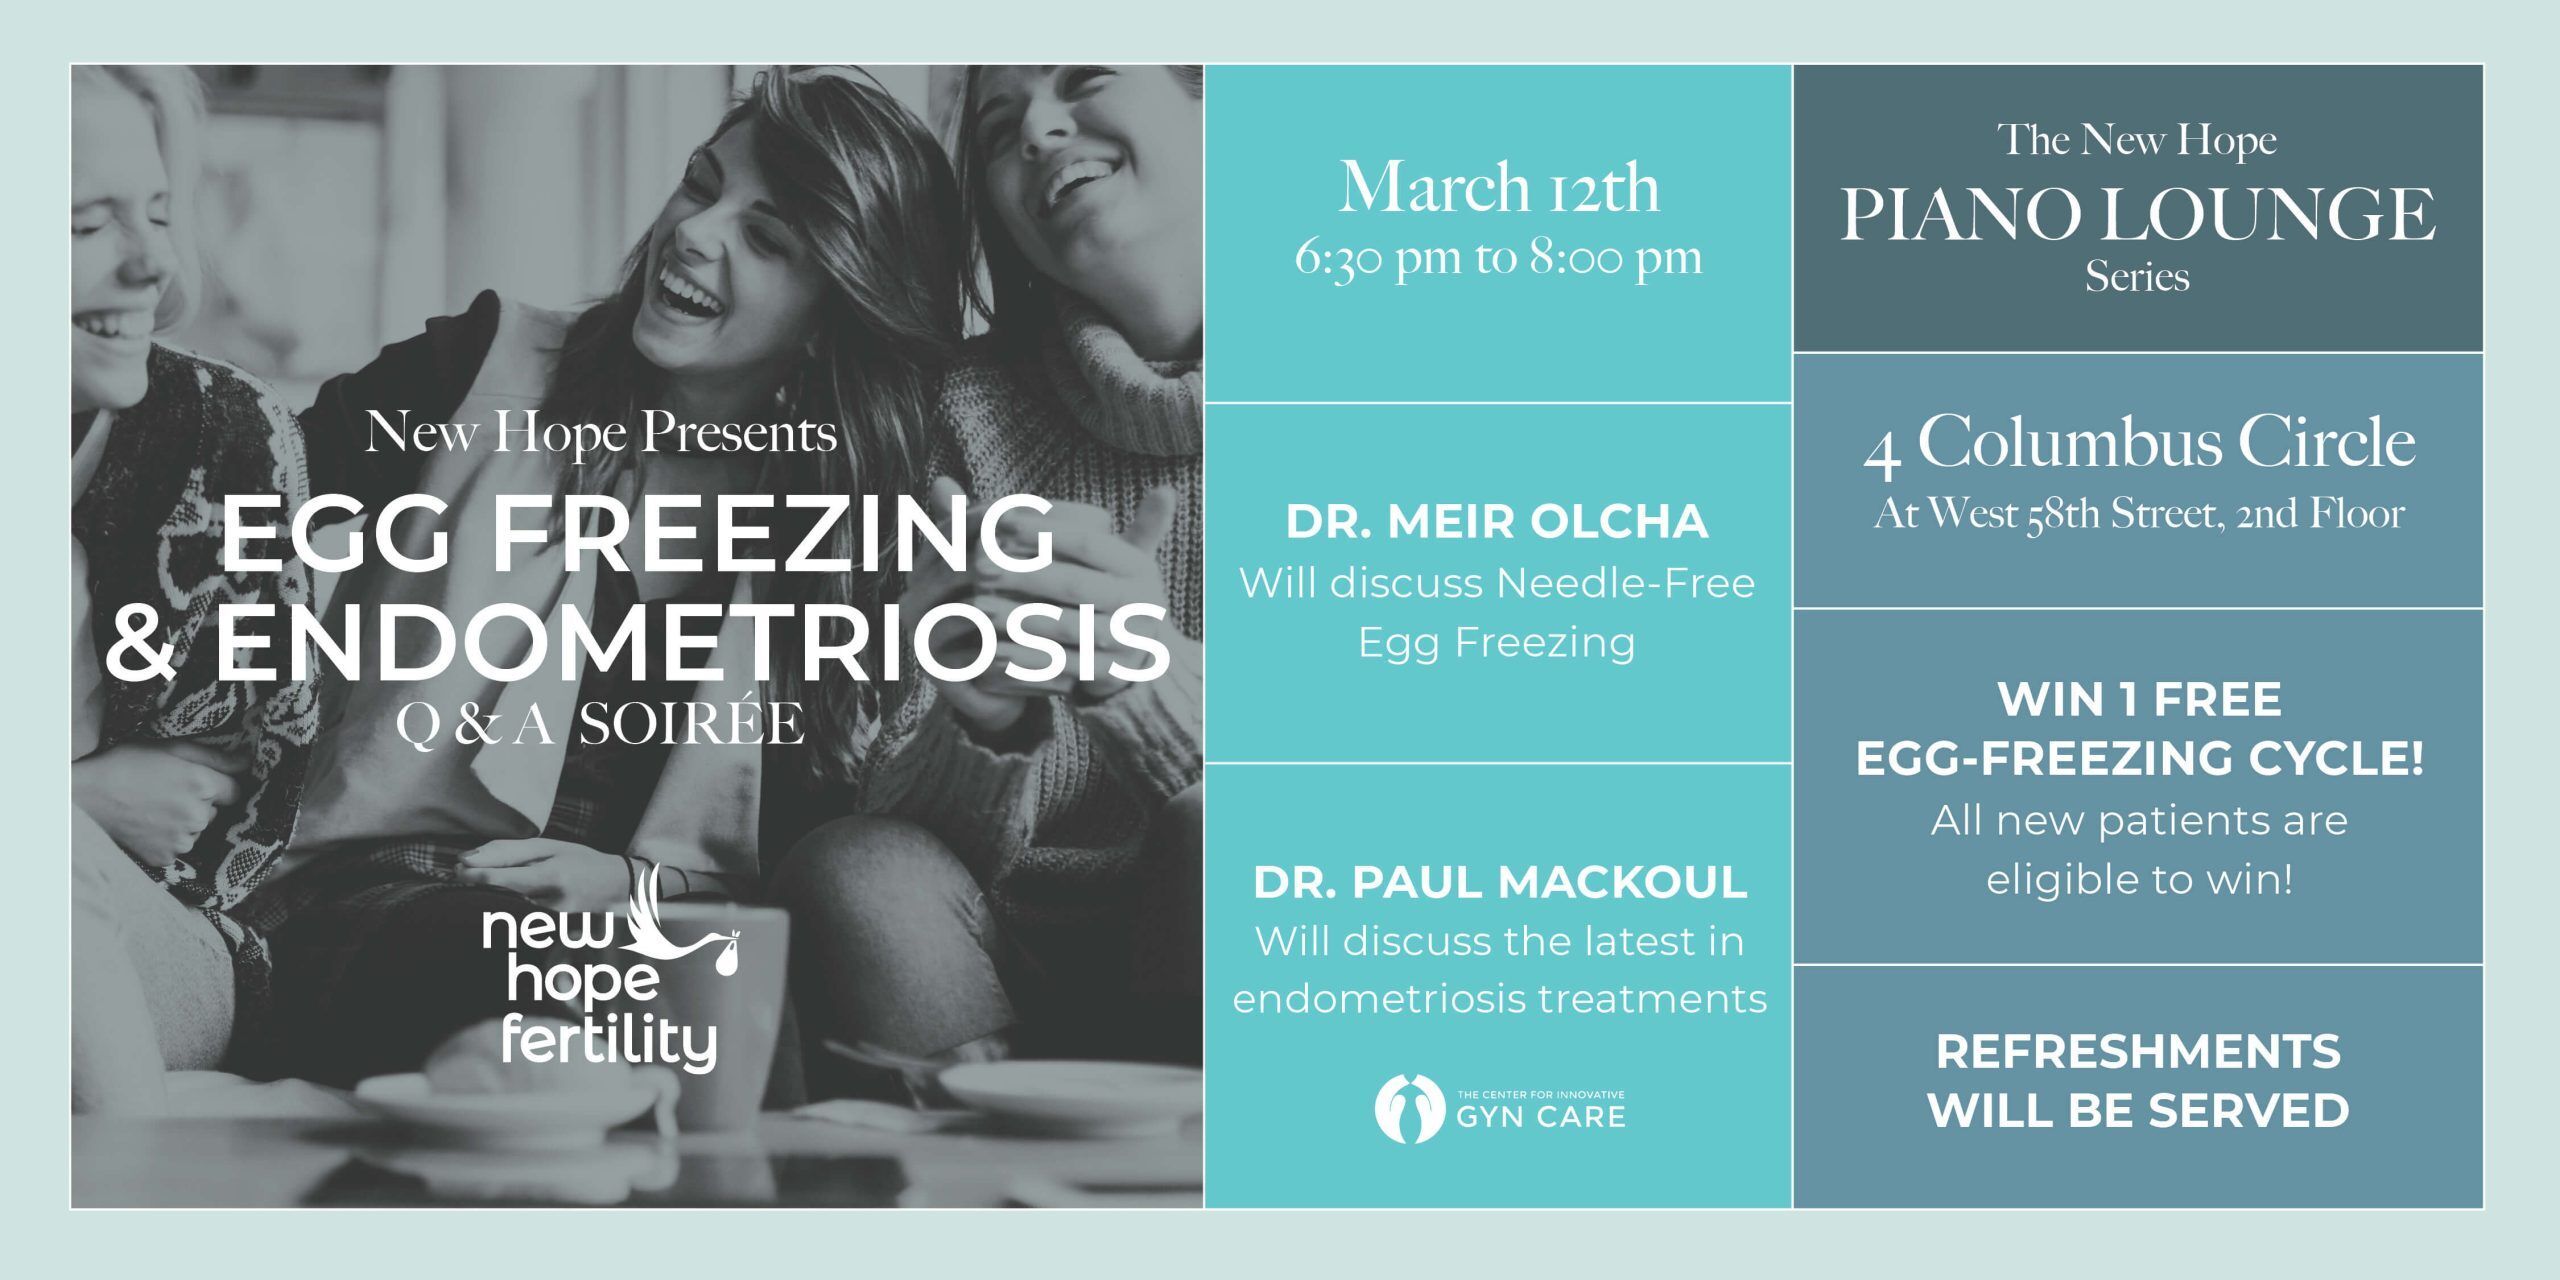 egg freezing event nyc